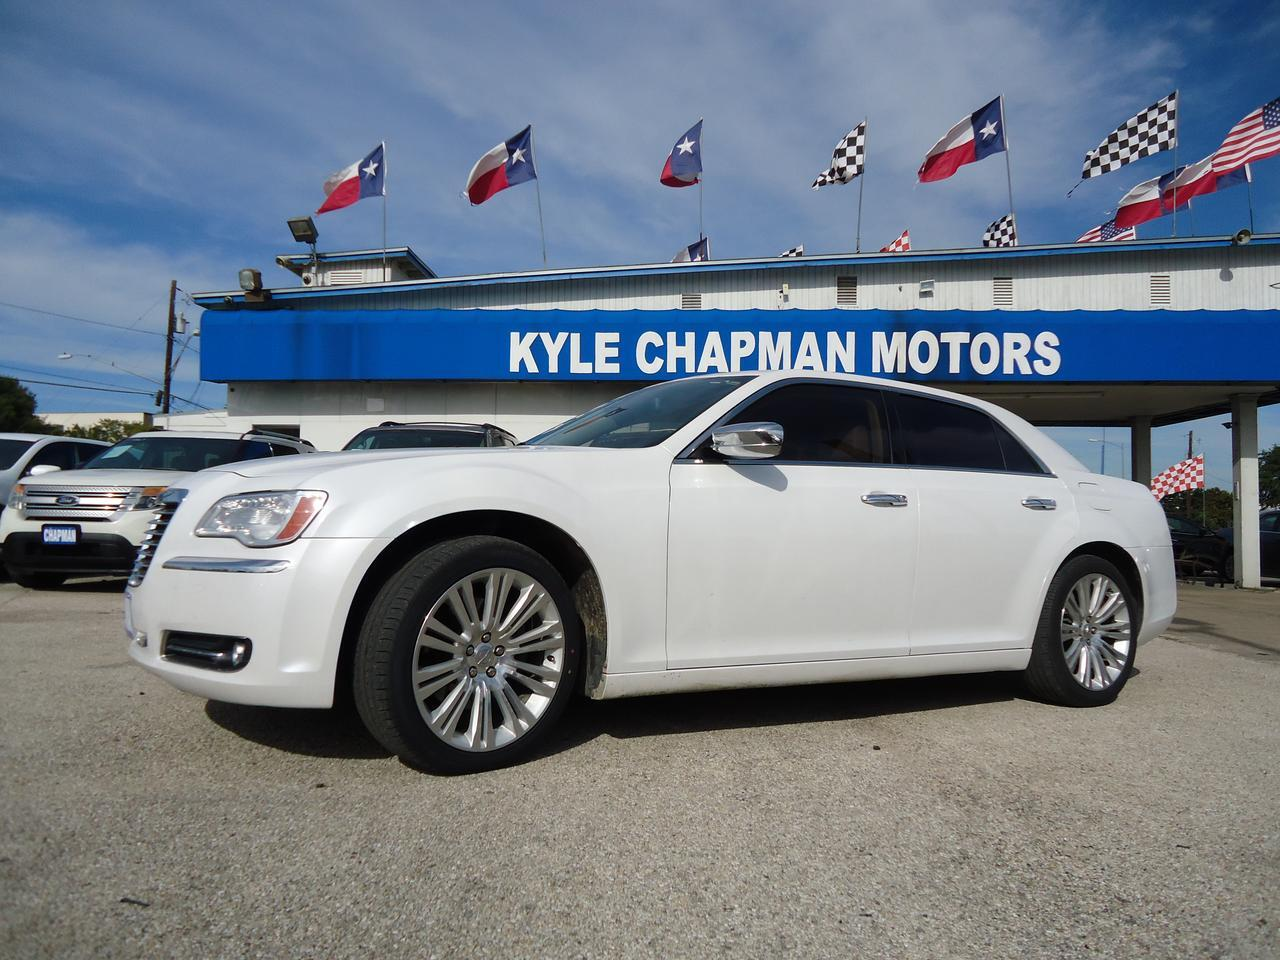 2012 Chrysler 300C Leather Seats-CD-AUX-USB-NAV-BLUETOOTH-BACKUPCAM